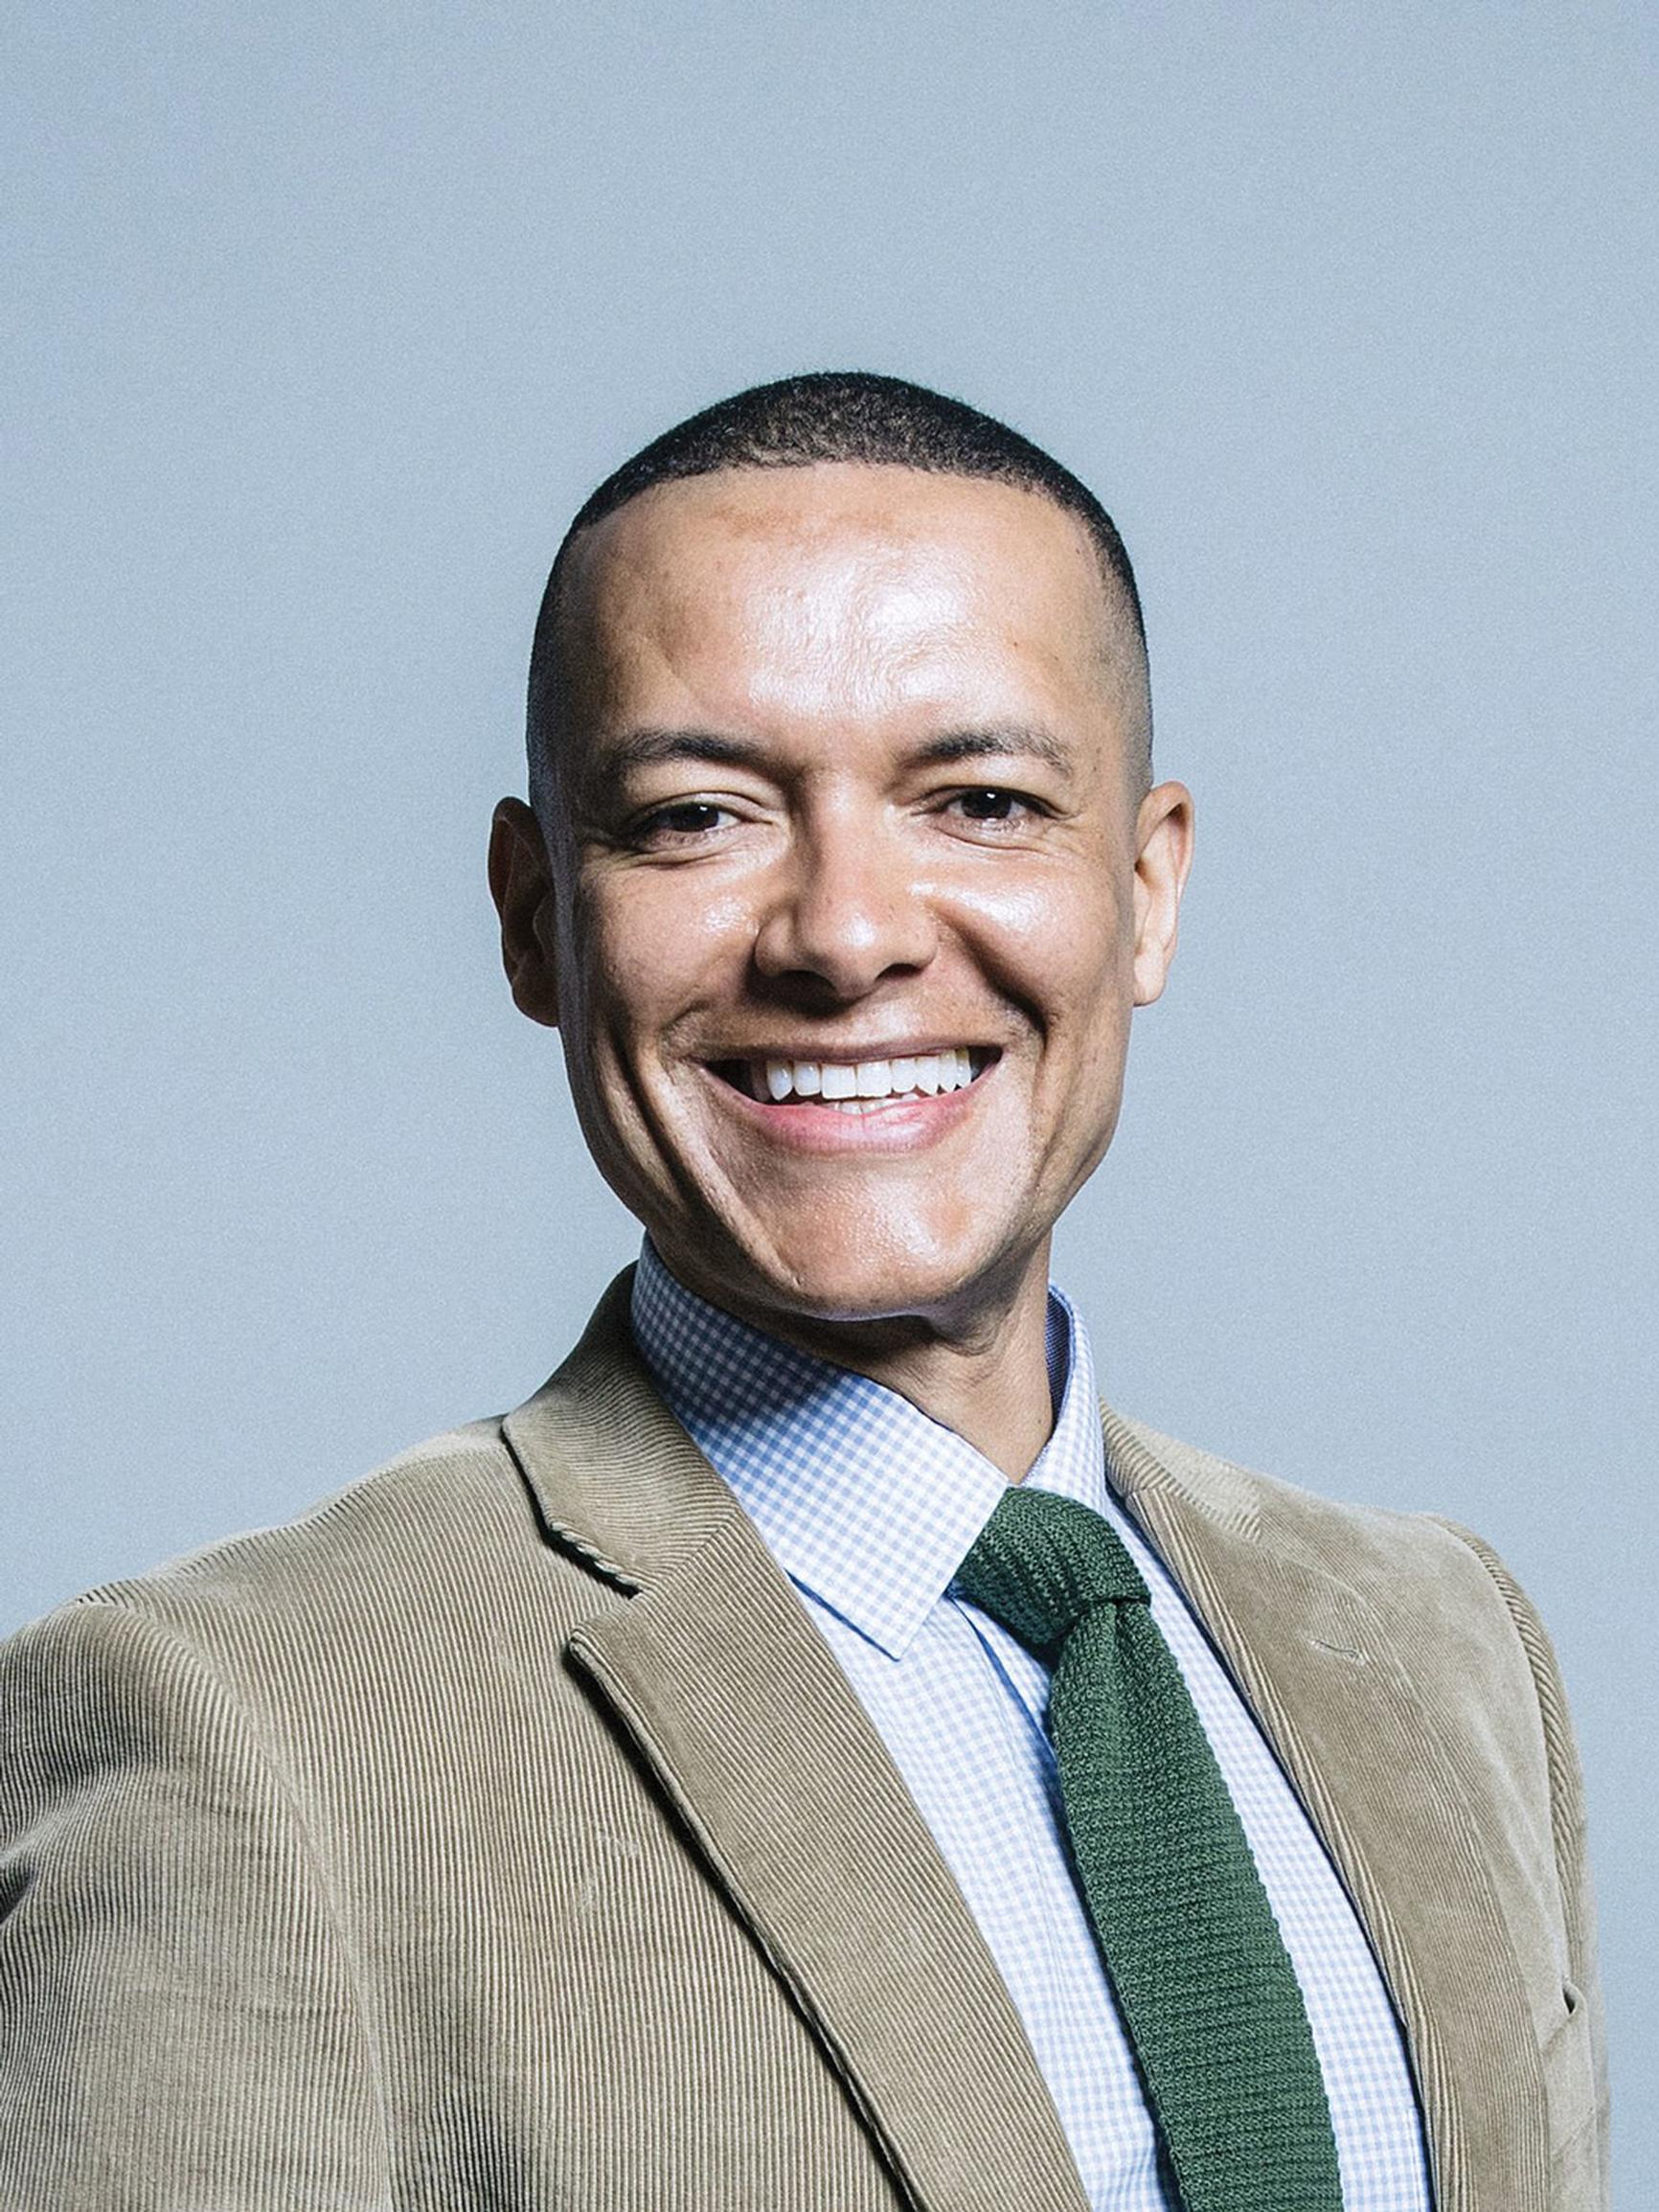 Labour MP and shadow minister Clive Lewis made his views opposing the expansion of Heathrow Airport known in an article in The Independent on 24 June, the day before MPs voted decisively to allow a third runway to be built there